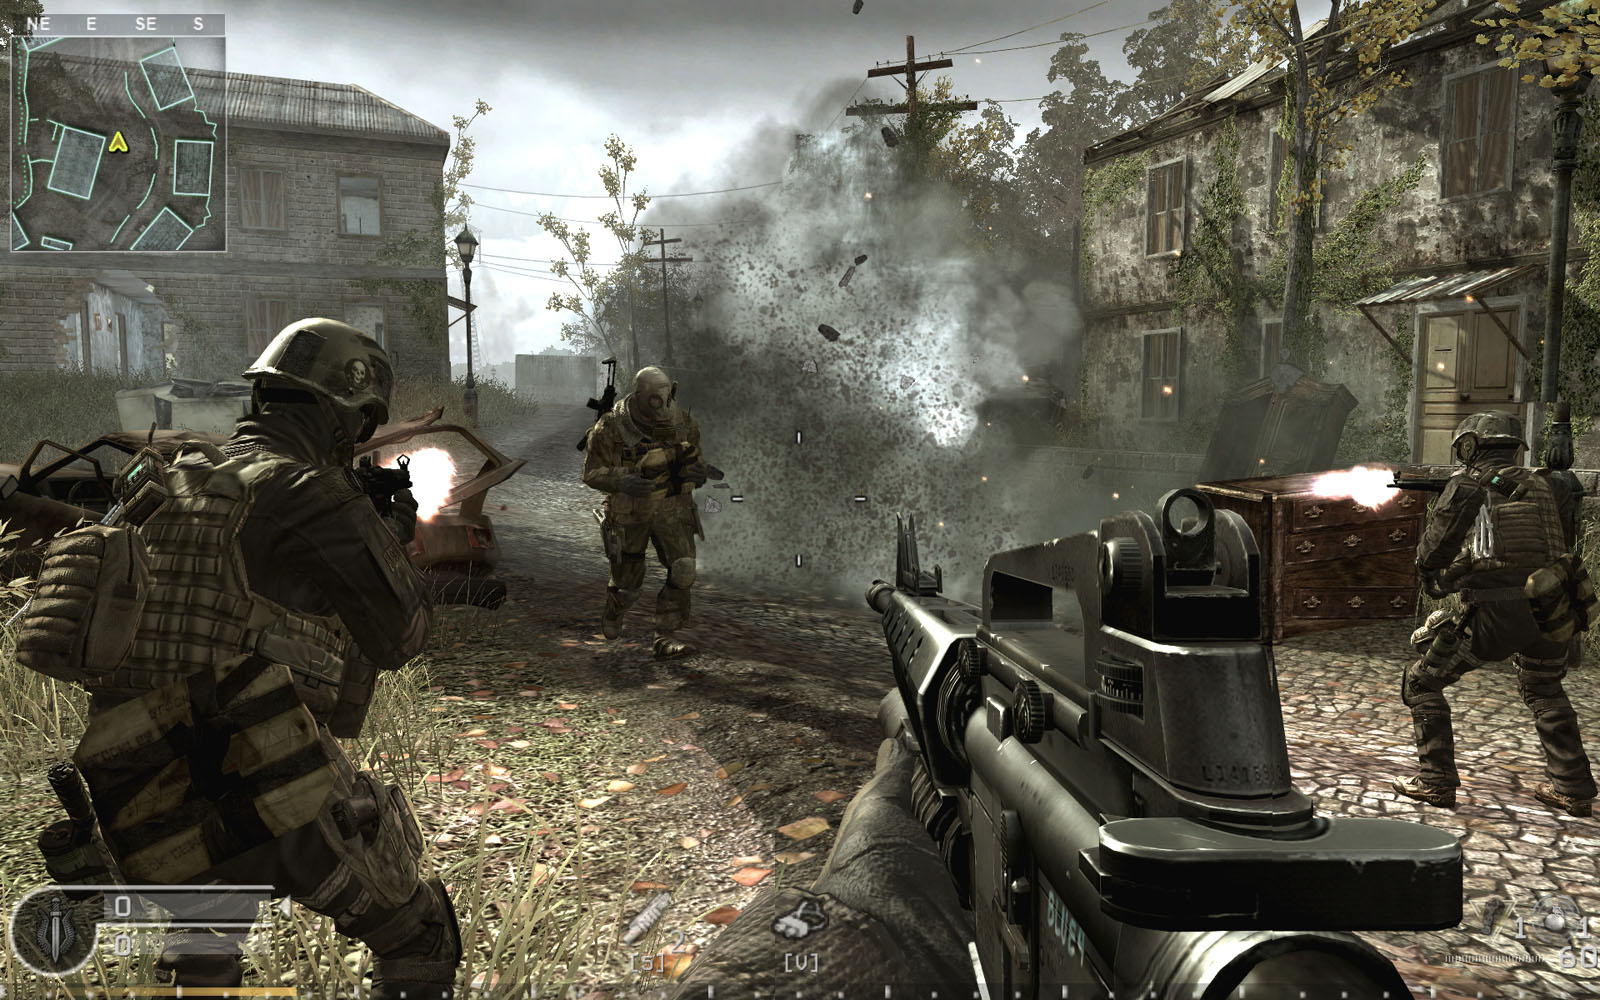 Are You an Assault or a Tactical Player of Shooters Game?